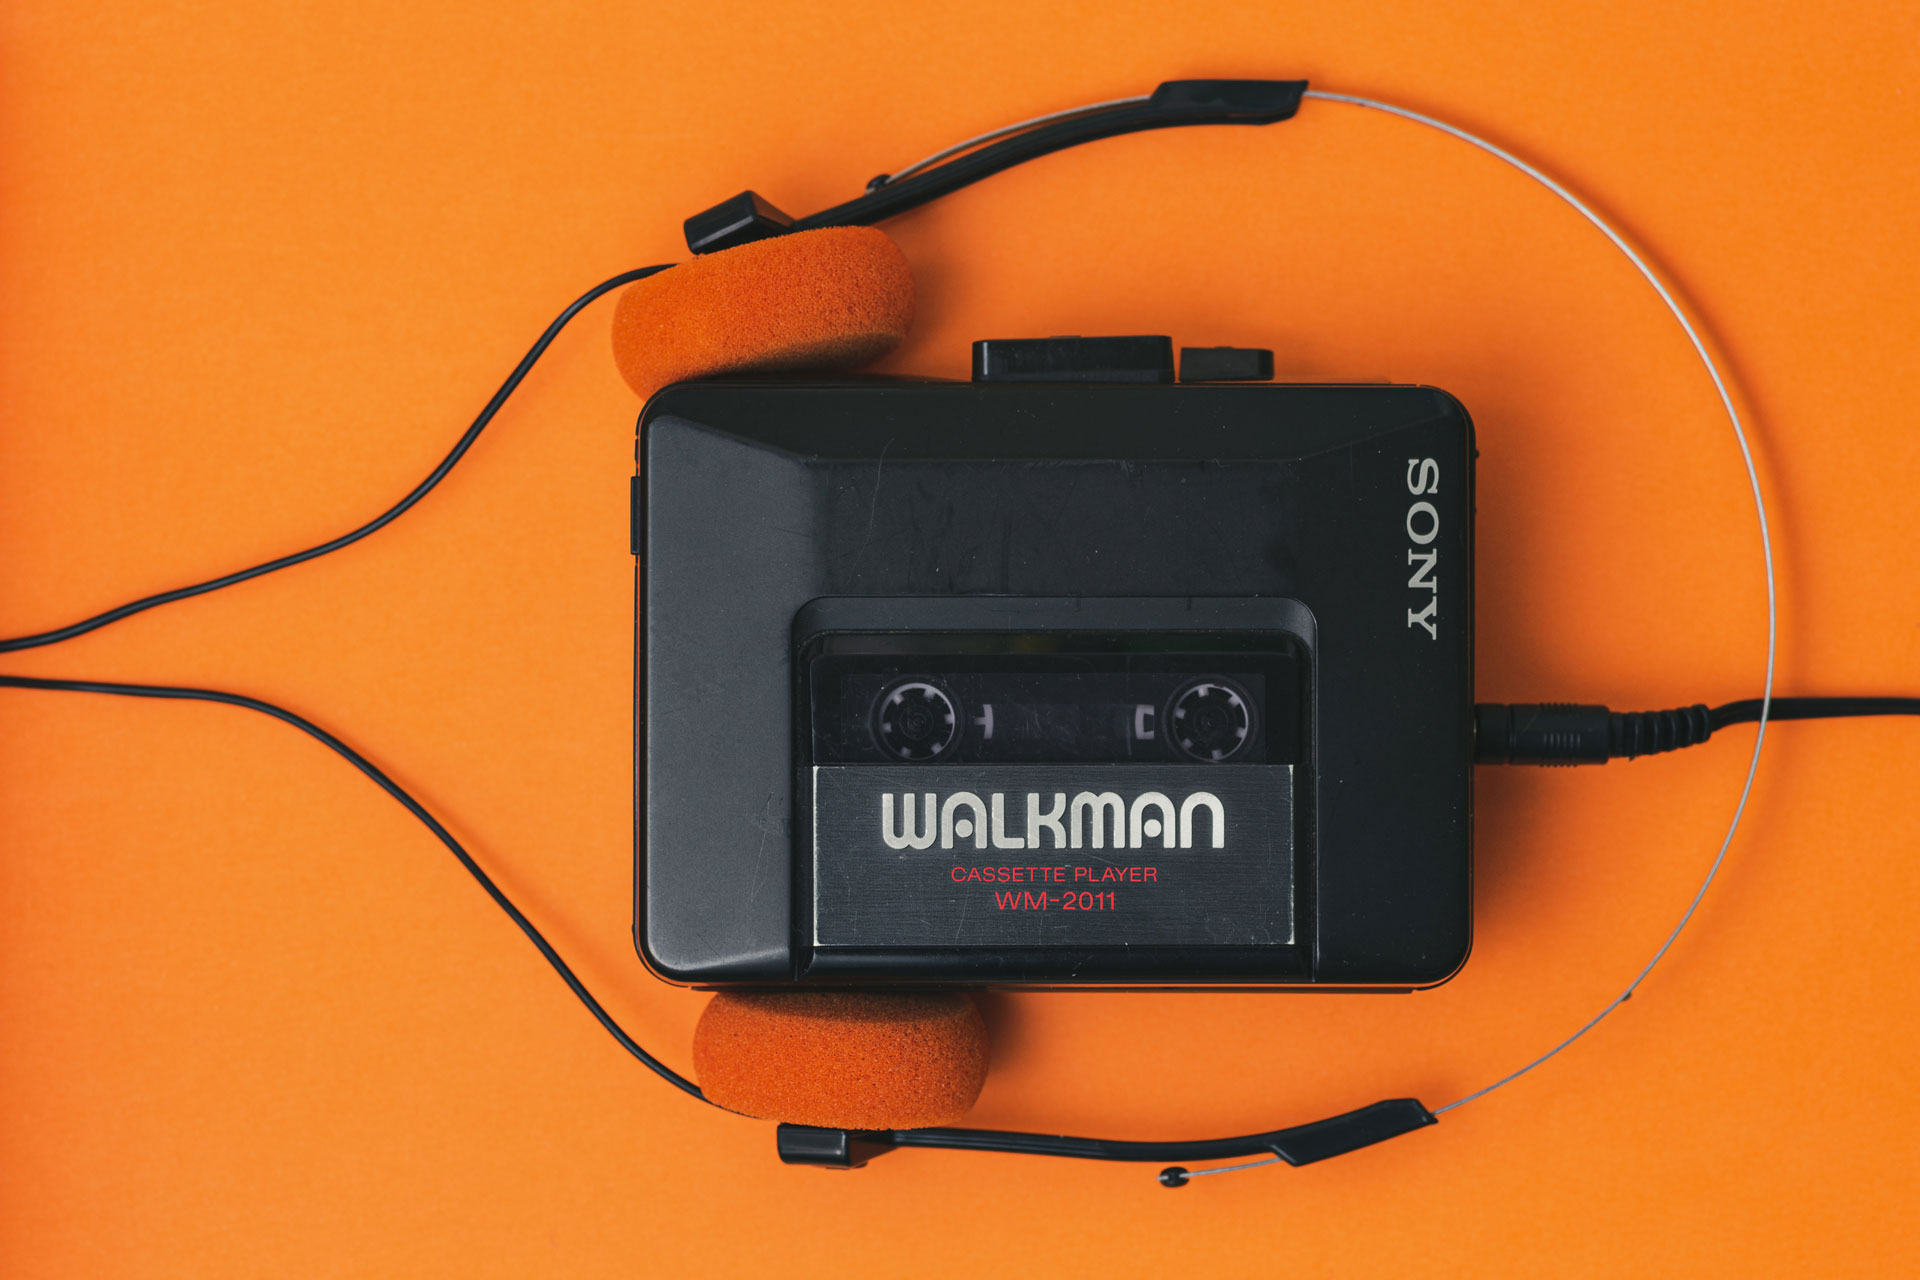 From Walkman to smartphones: How portable music has evolved.